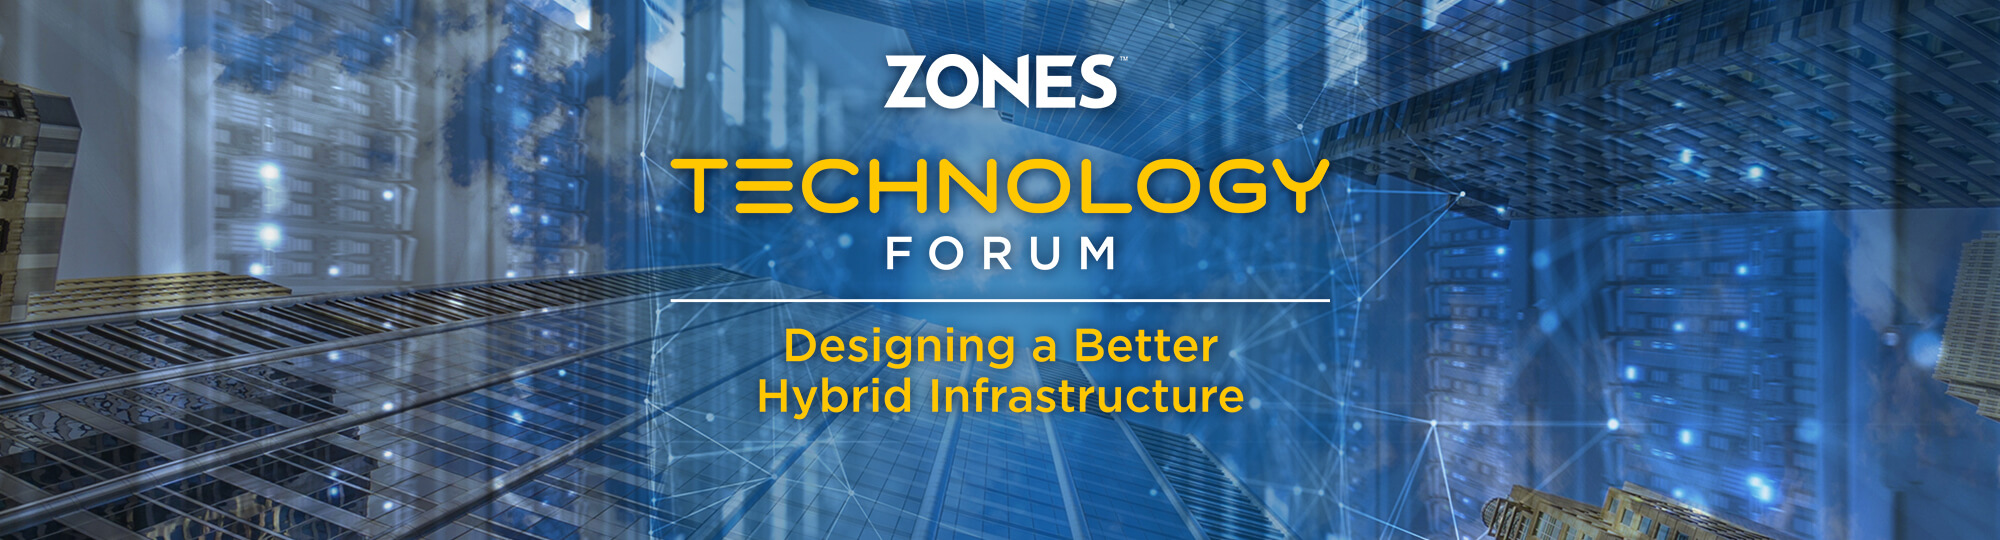 Zones Technology Forum: Designing a Better Hybrid Infrastructure - On-Demand